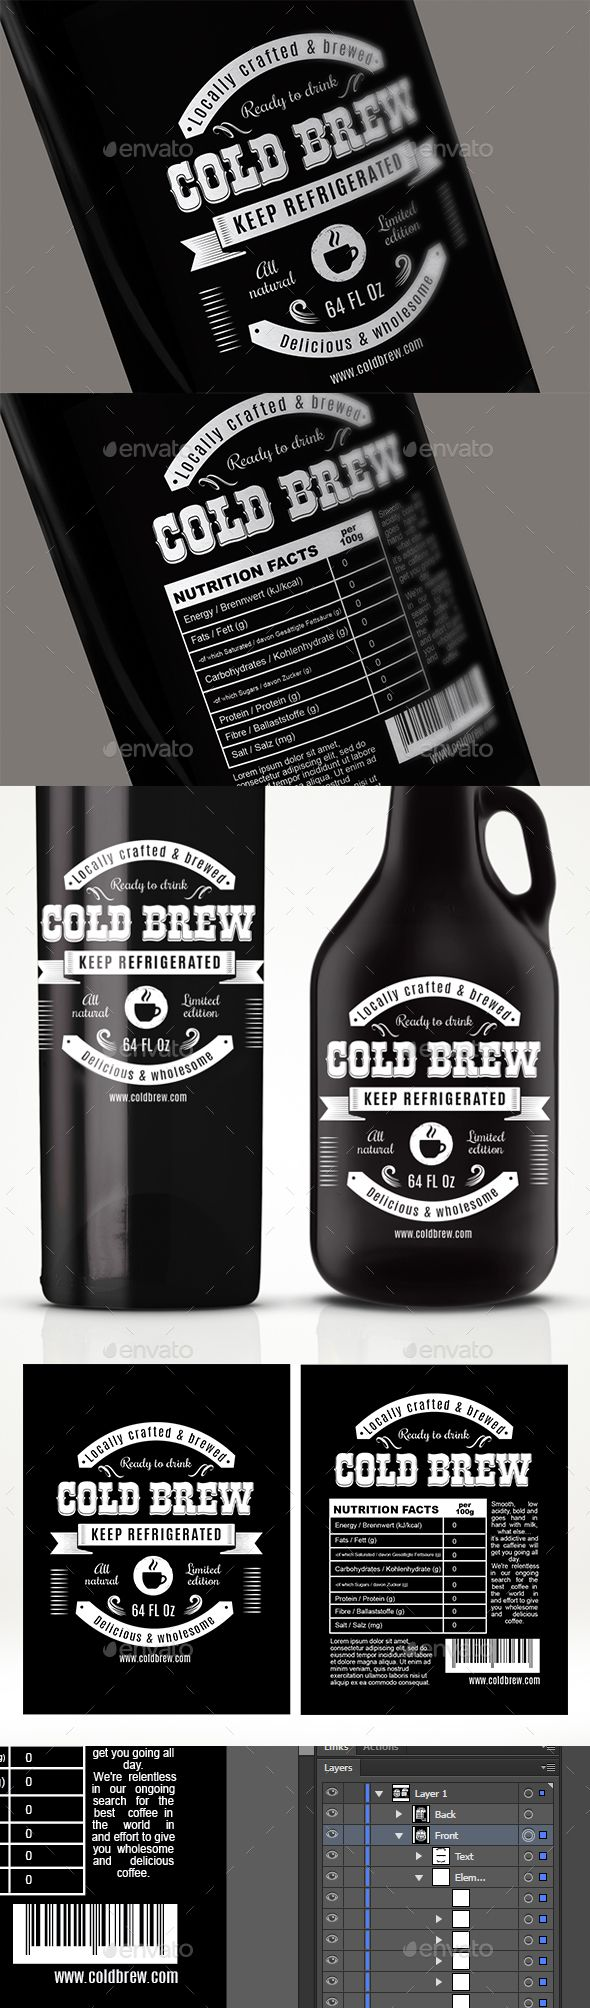 Cold Brew Label | Cold Brew, Psd Templates And Print Templates